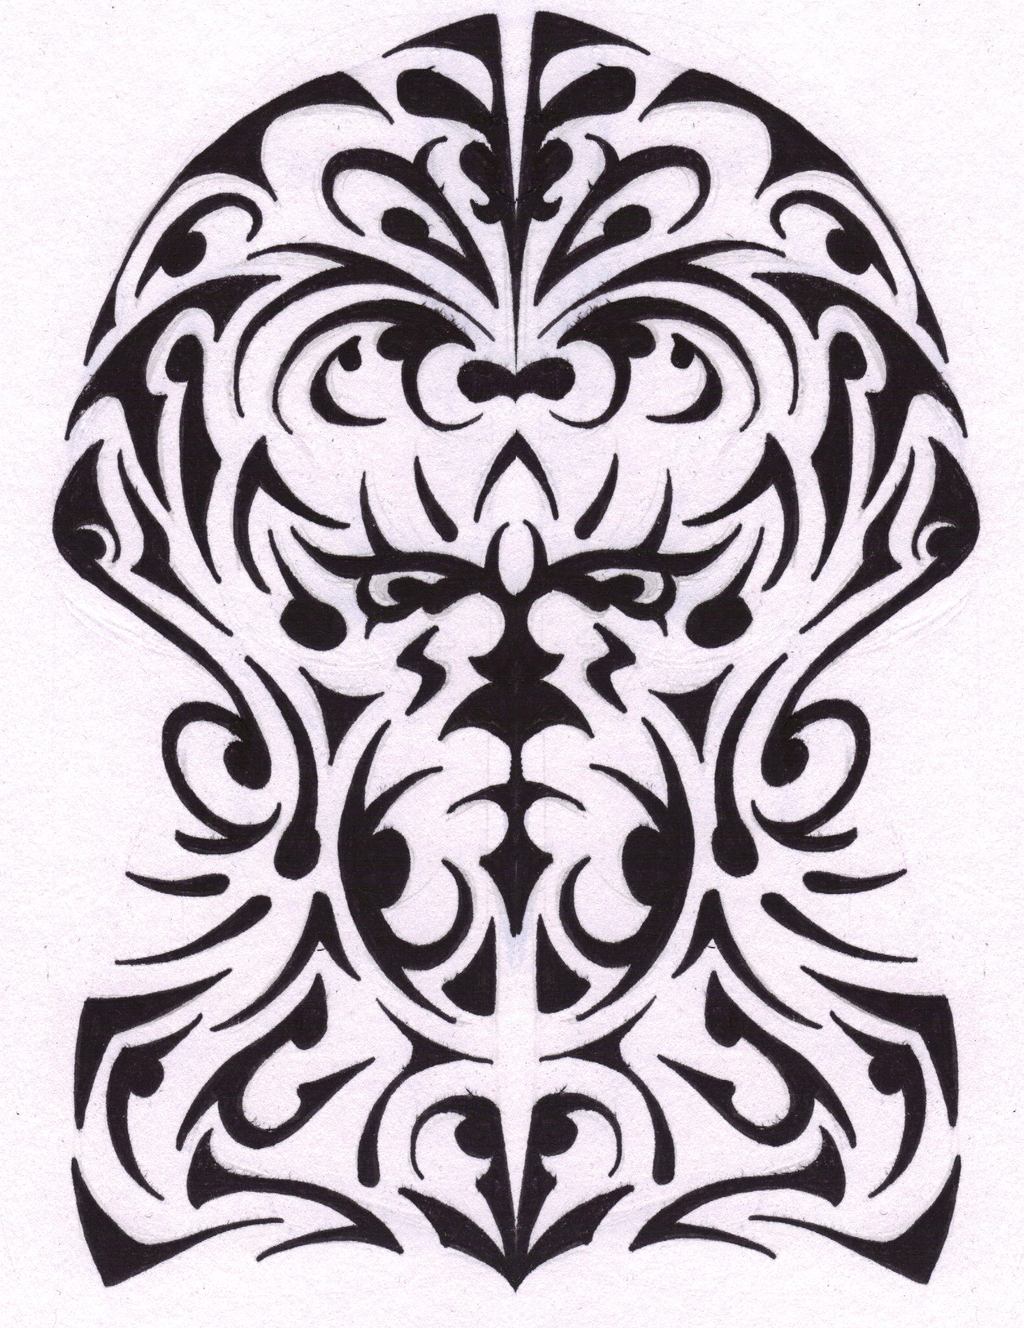 Half Sleeve Tribal Tattoo Png image #19376